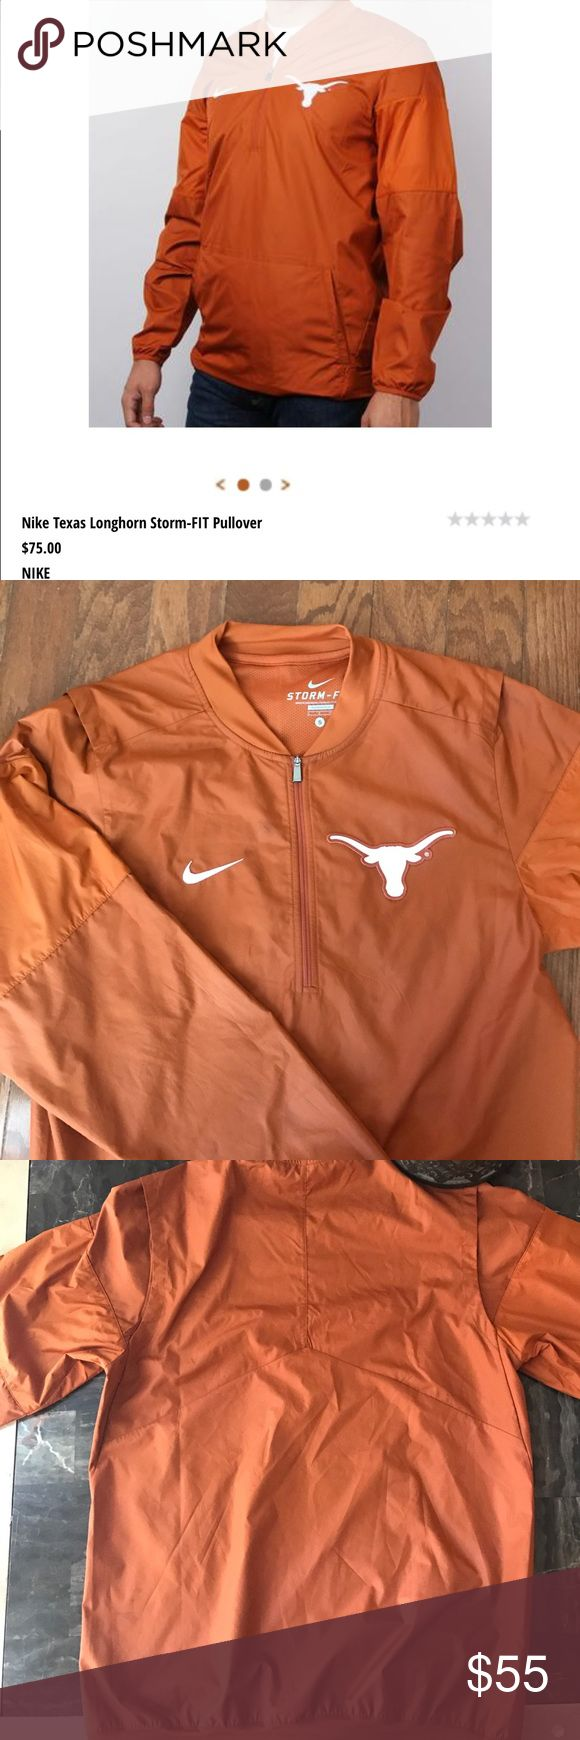 Nike Texas ut longhorn windbreaker jacket This is a unisex windbreaker jacket for the University of Texas. Has a pocket , no hood and it's pretty warm for a windbreaker. It Is in great condition worn a few times. Will be open to offers! Nike Jackets & Coats